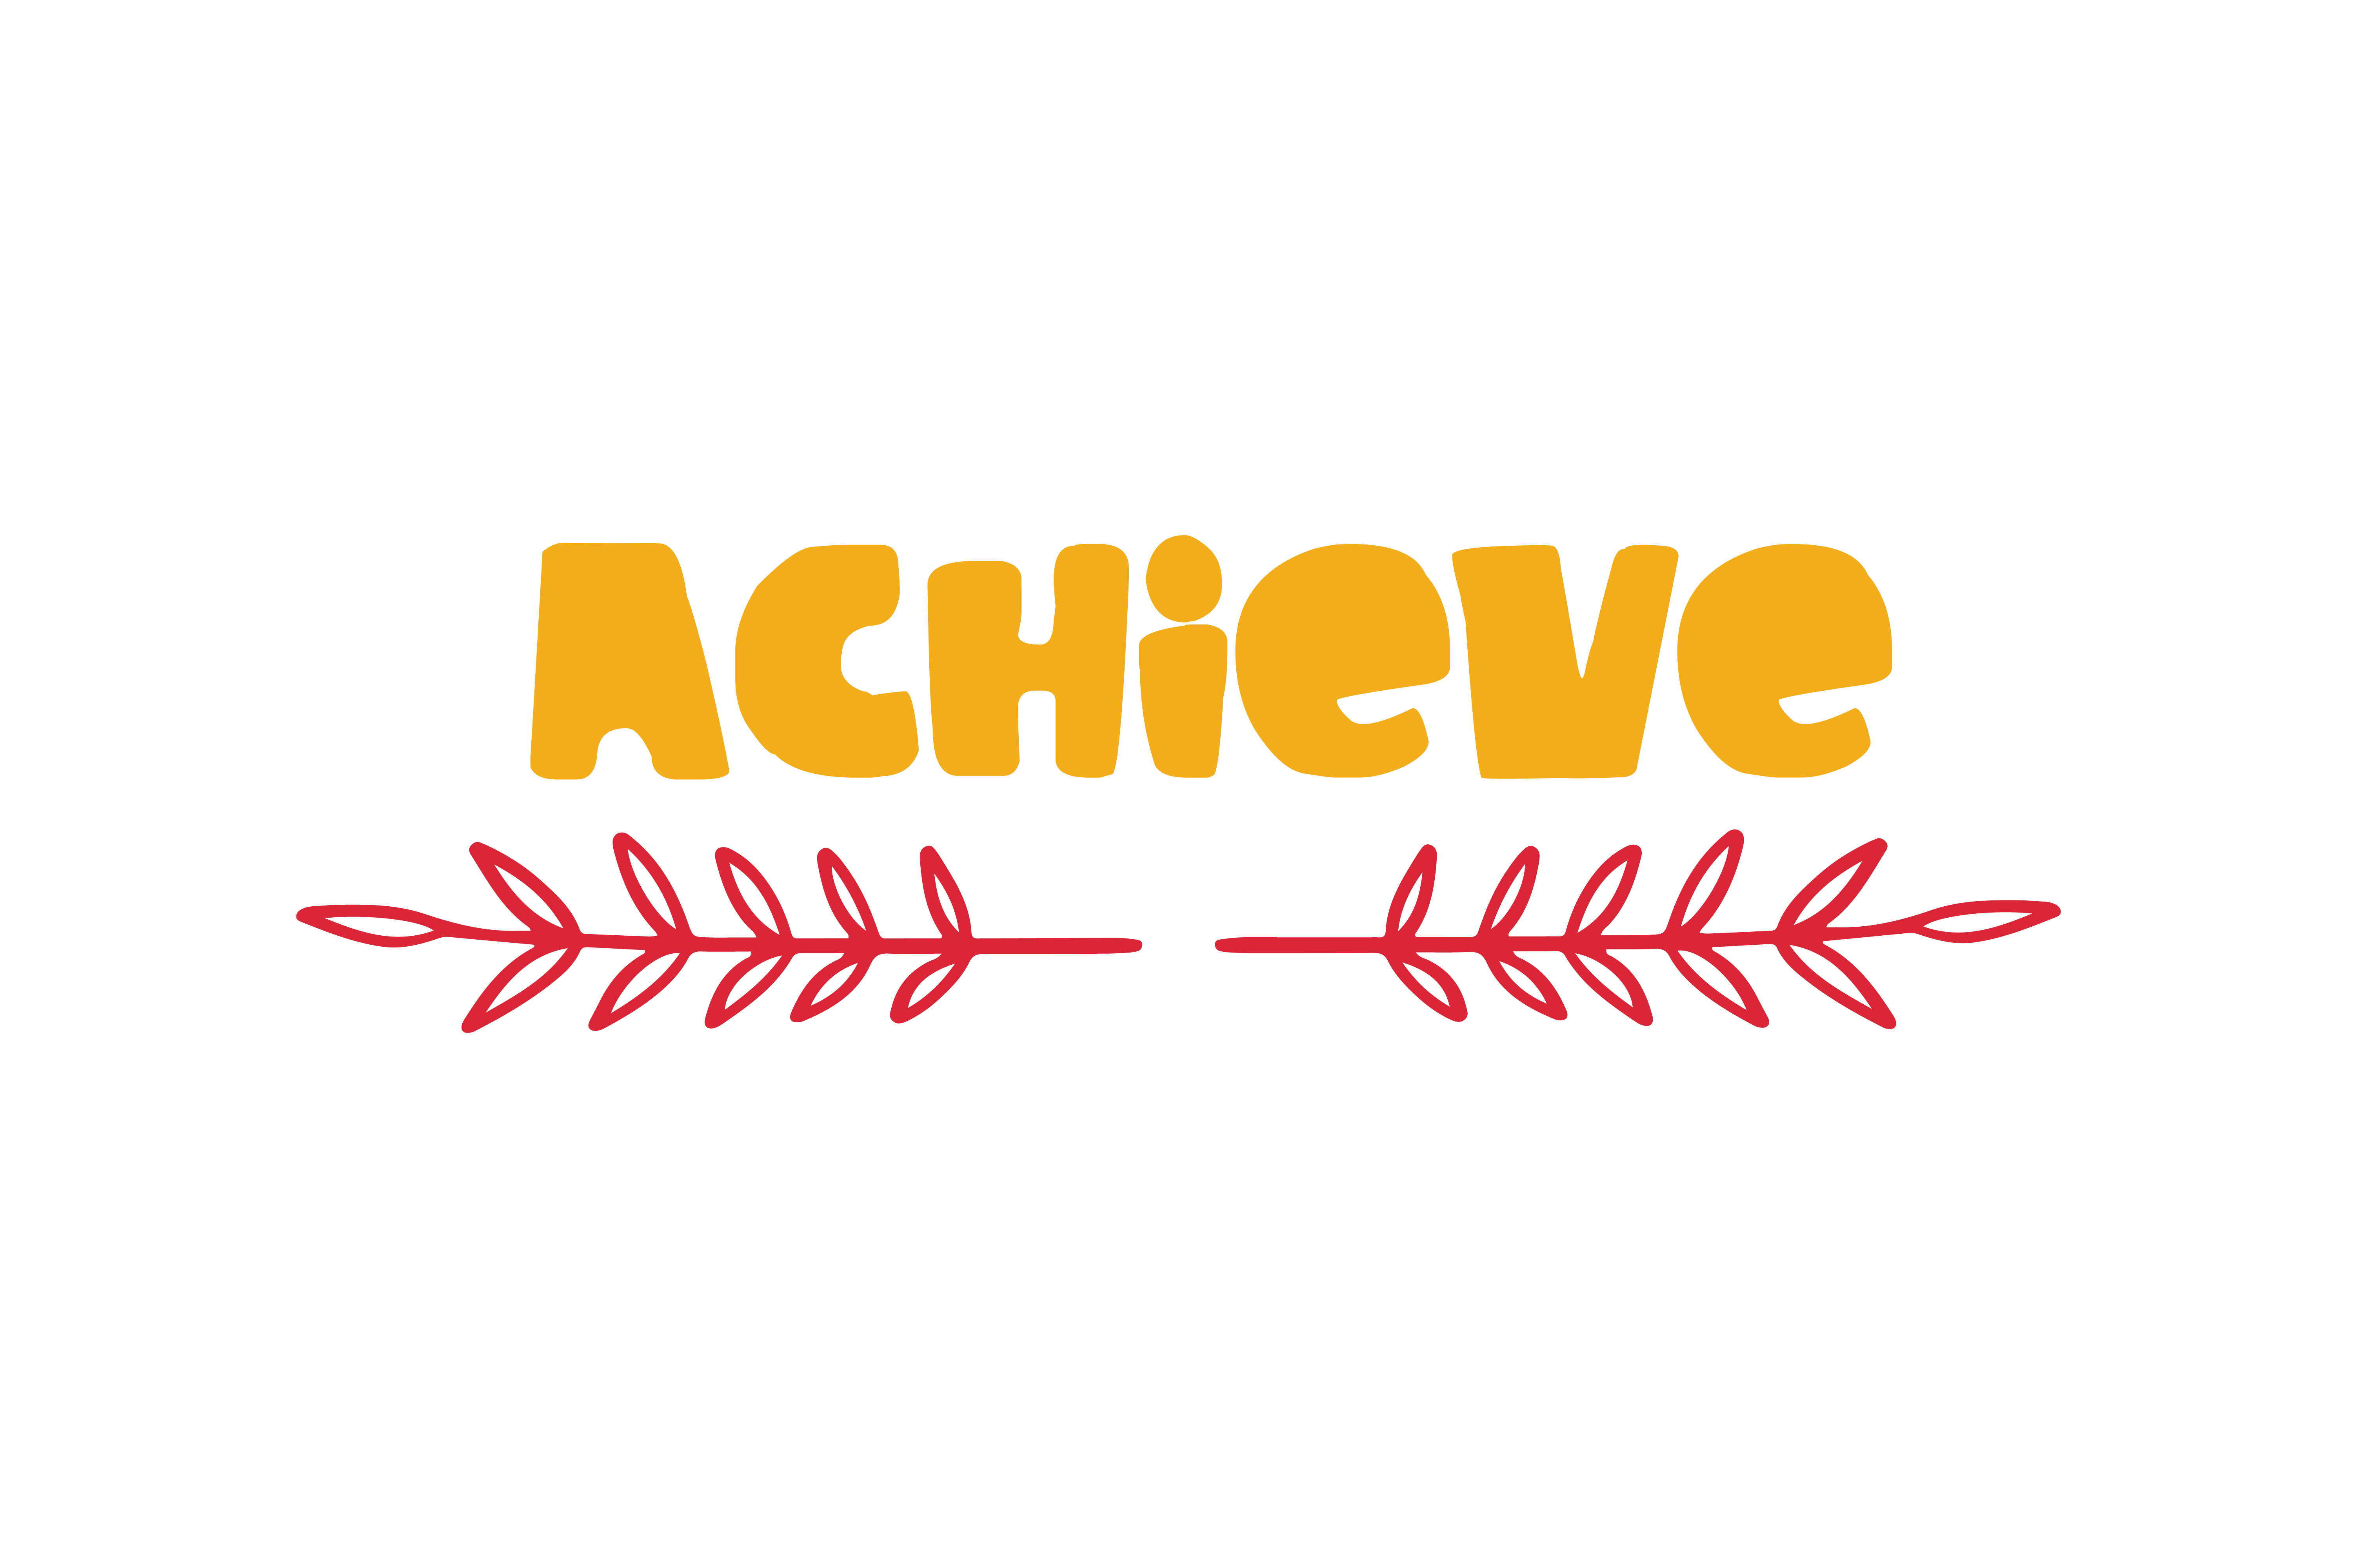 Download Free Achieve Quote Graphic By Thelucky Creative Fabrica for Cricut Explore, Silhouette and other cutting machines.